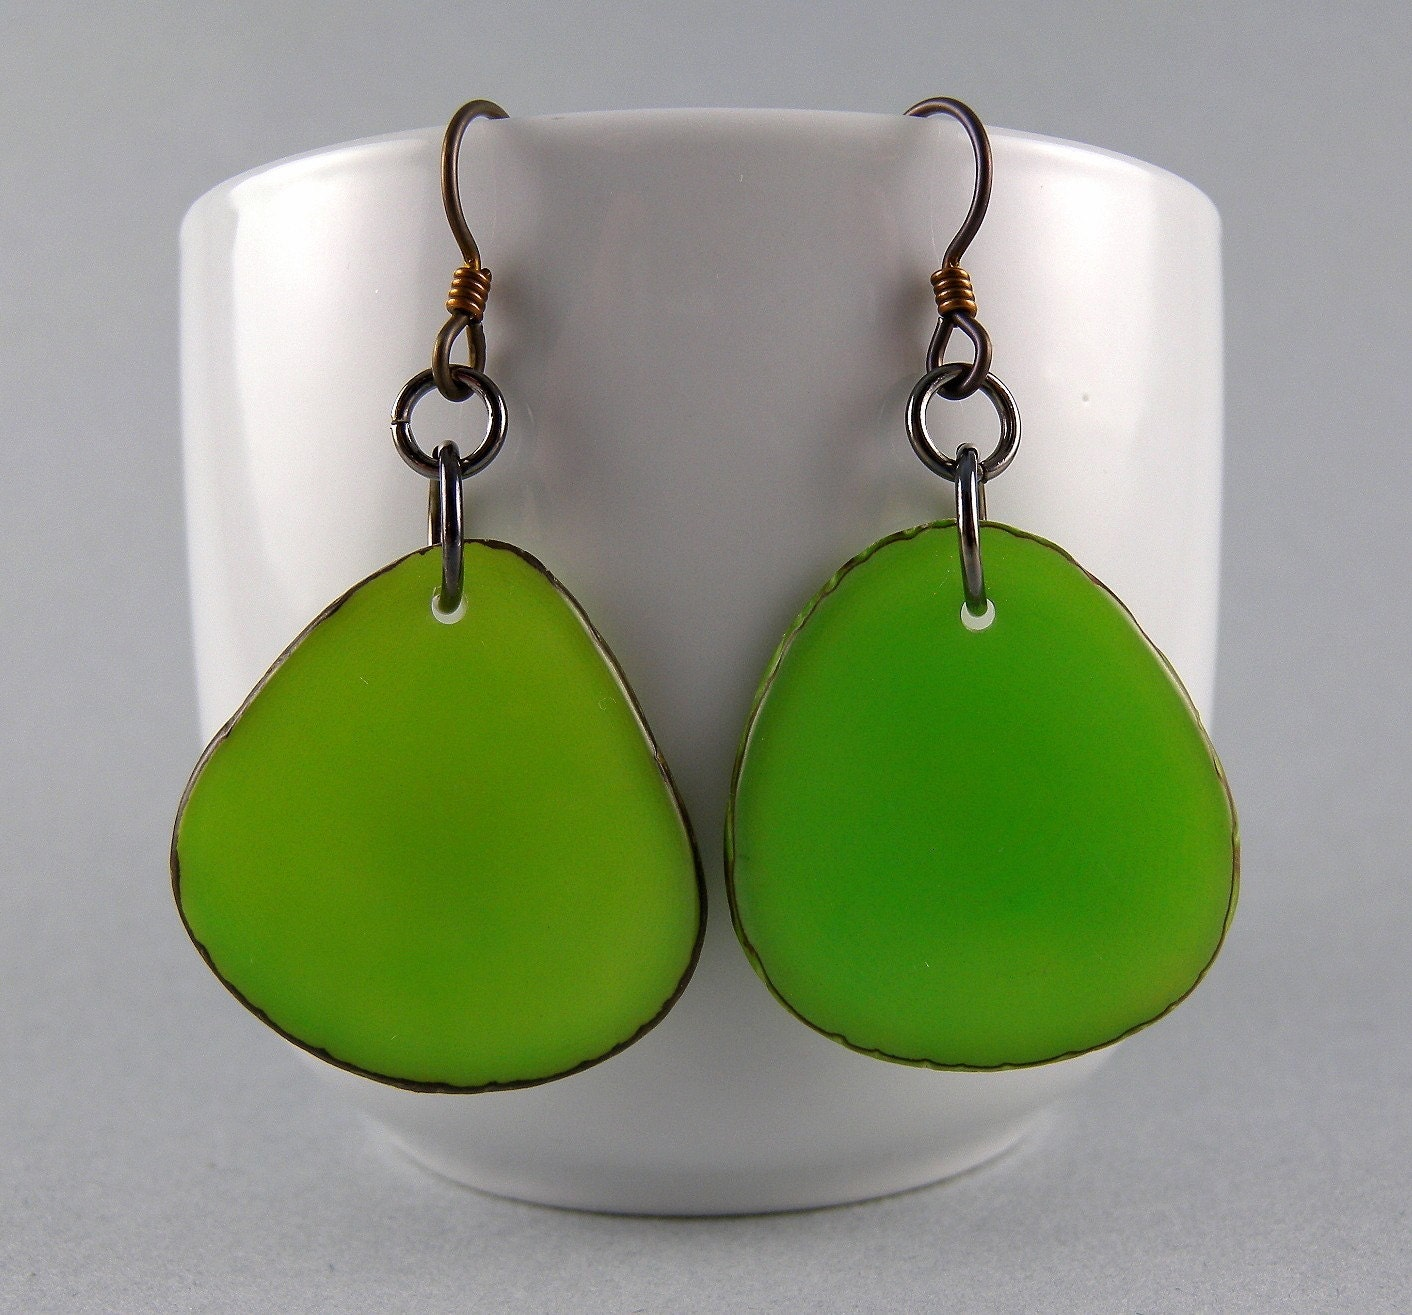 Lime Green Tagua Nut -Eco Friendly Earrings  -with Free Shipping